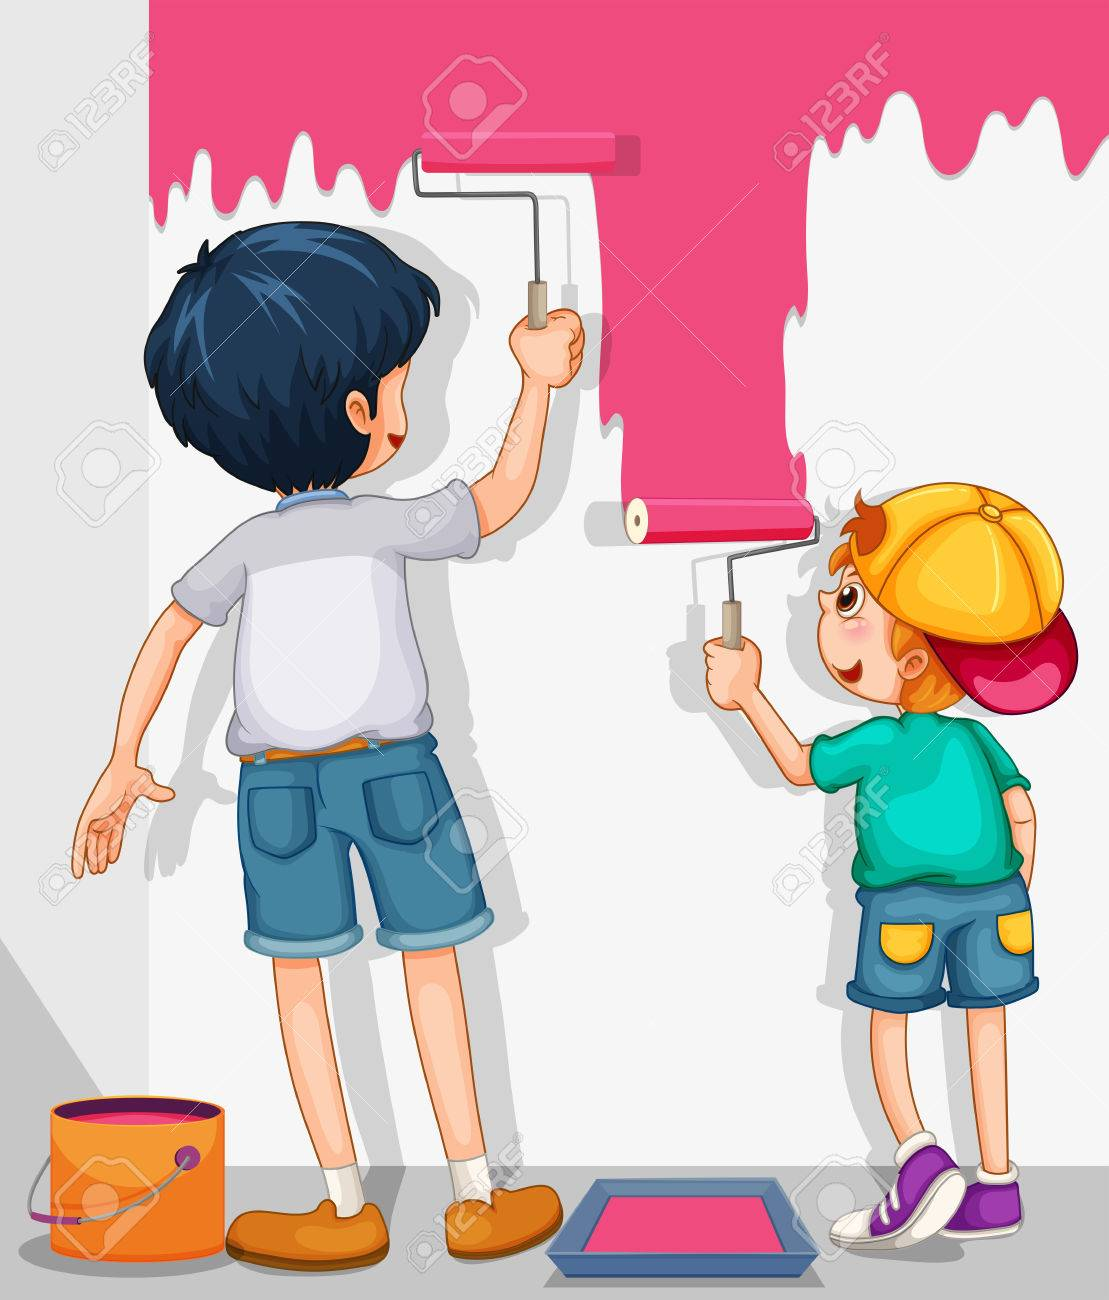 Two Boys Painting The Wall In Pink Illustration